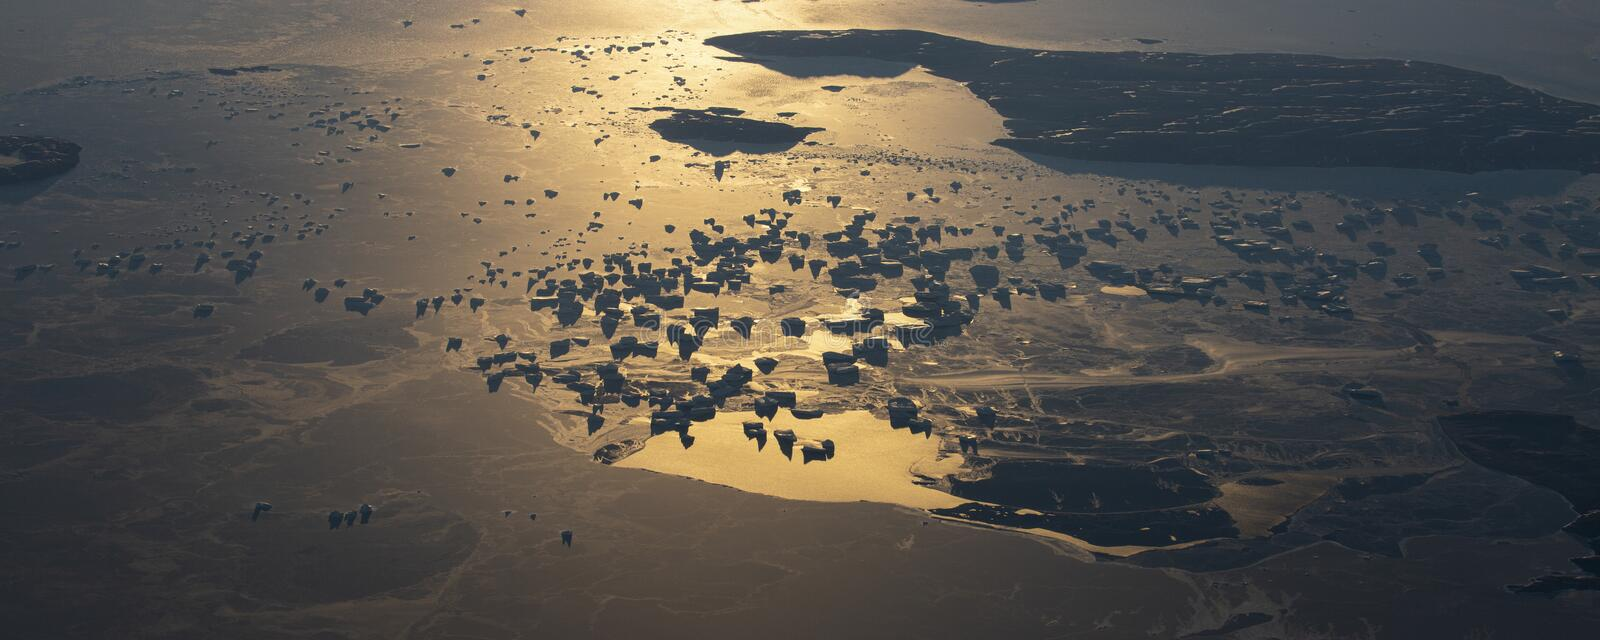 20Take an aerial view of the ice and sunrise over the bering strait.(1). The bering strait is located in the high latitudes, cold weather, many storms stock photography